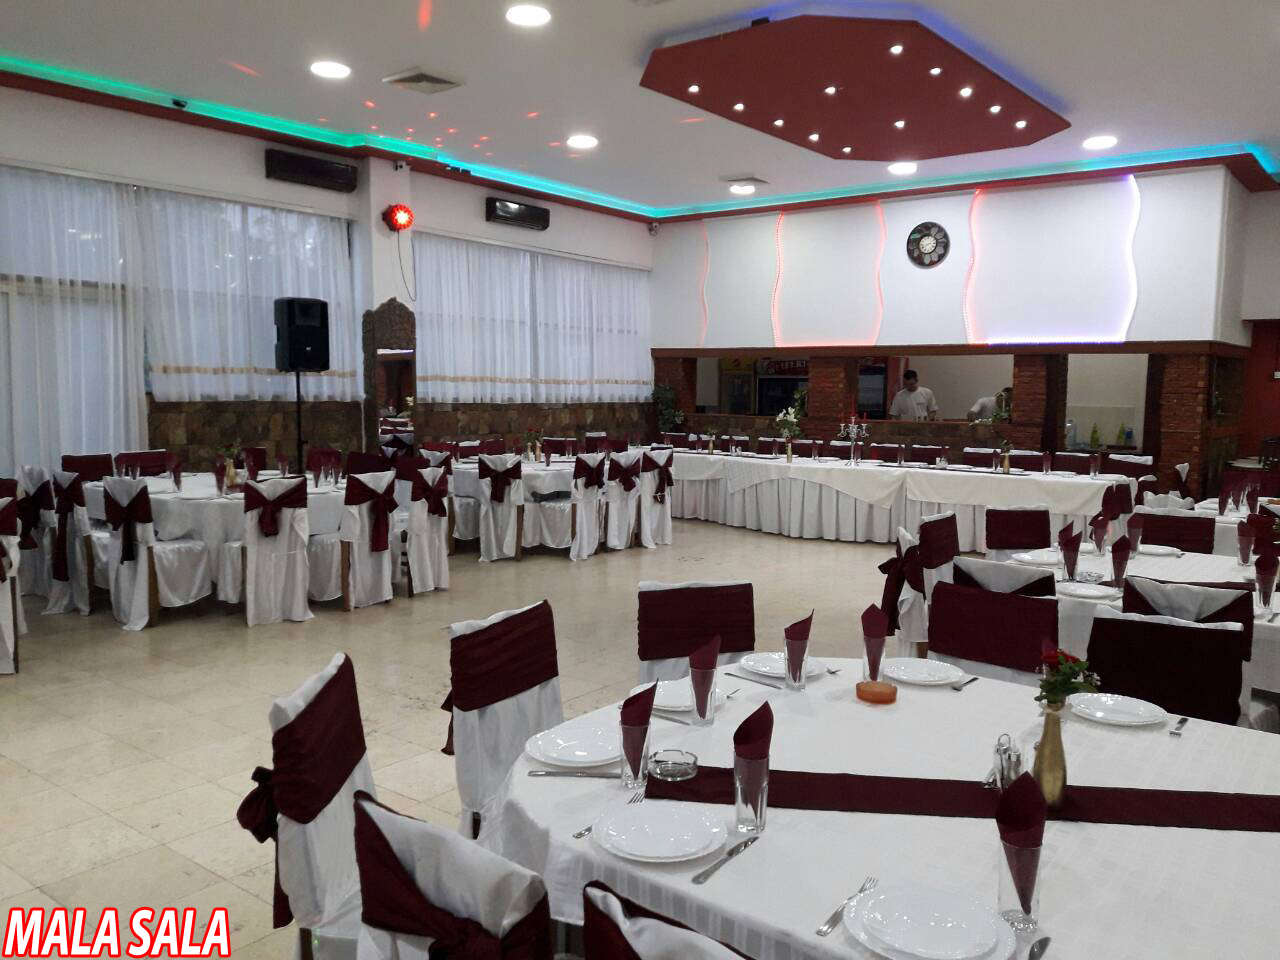 GRAND HALL KACAREVO AND CAFFE GRILL TICINO Renting halls Pancevo - Photo 5